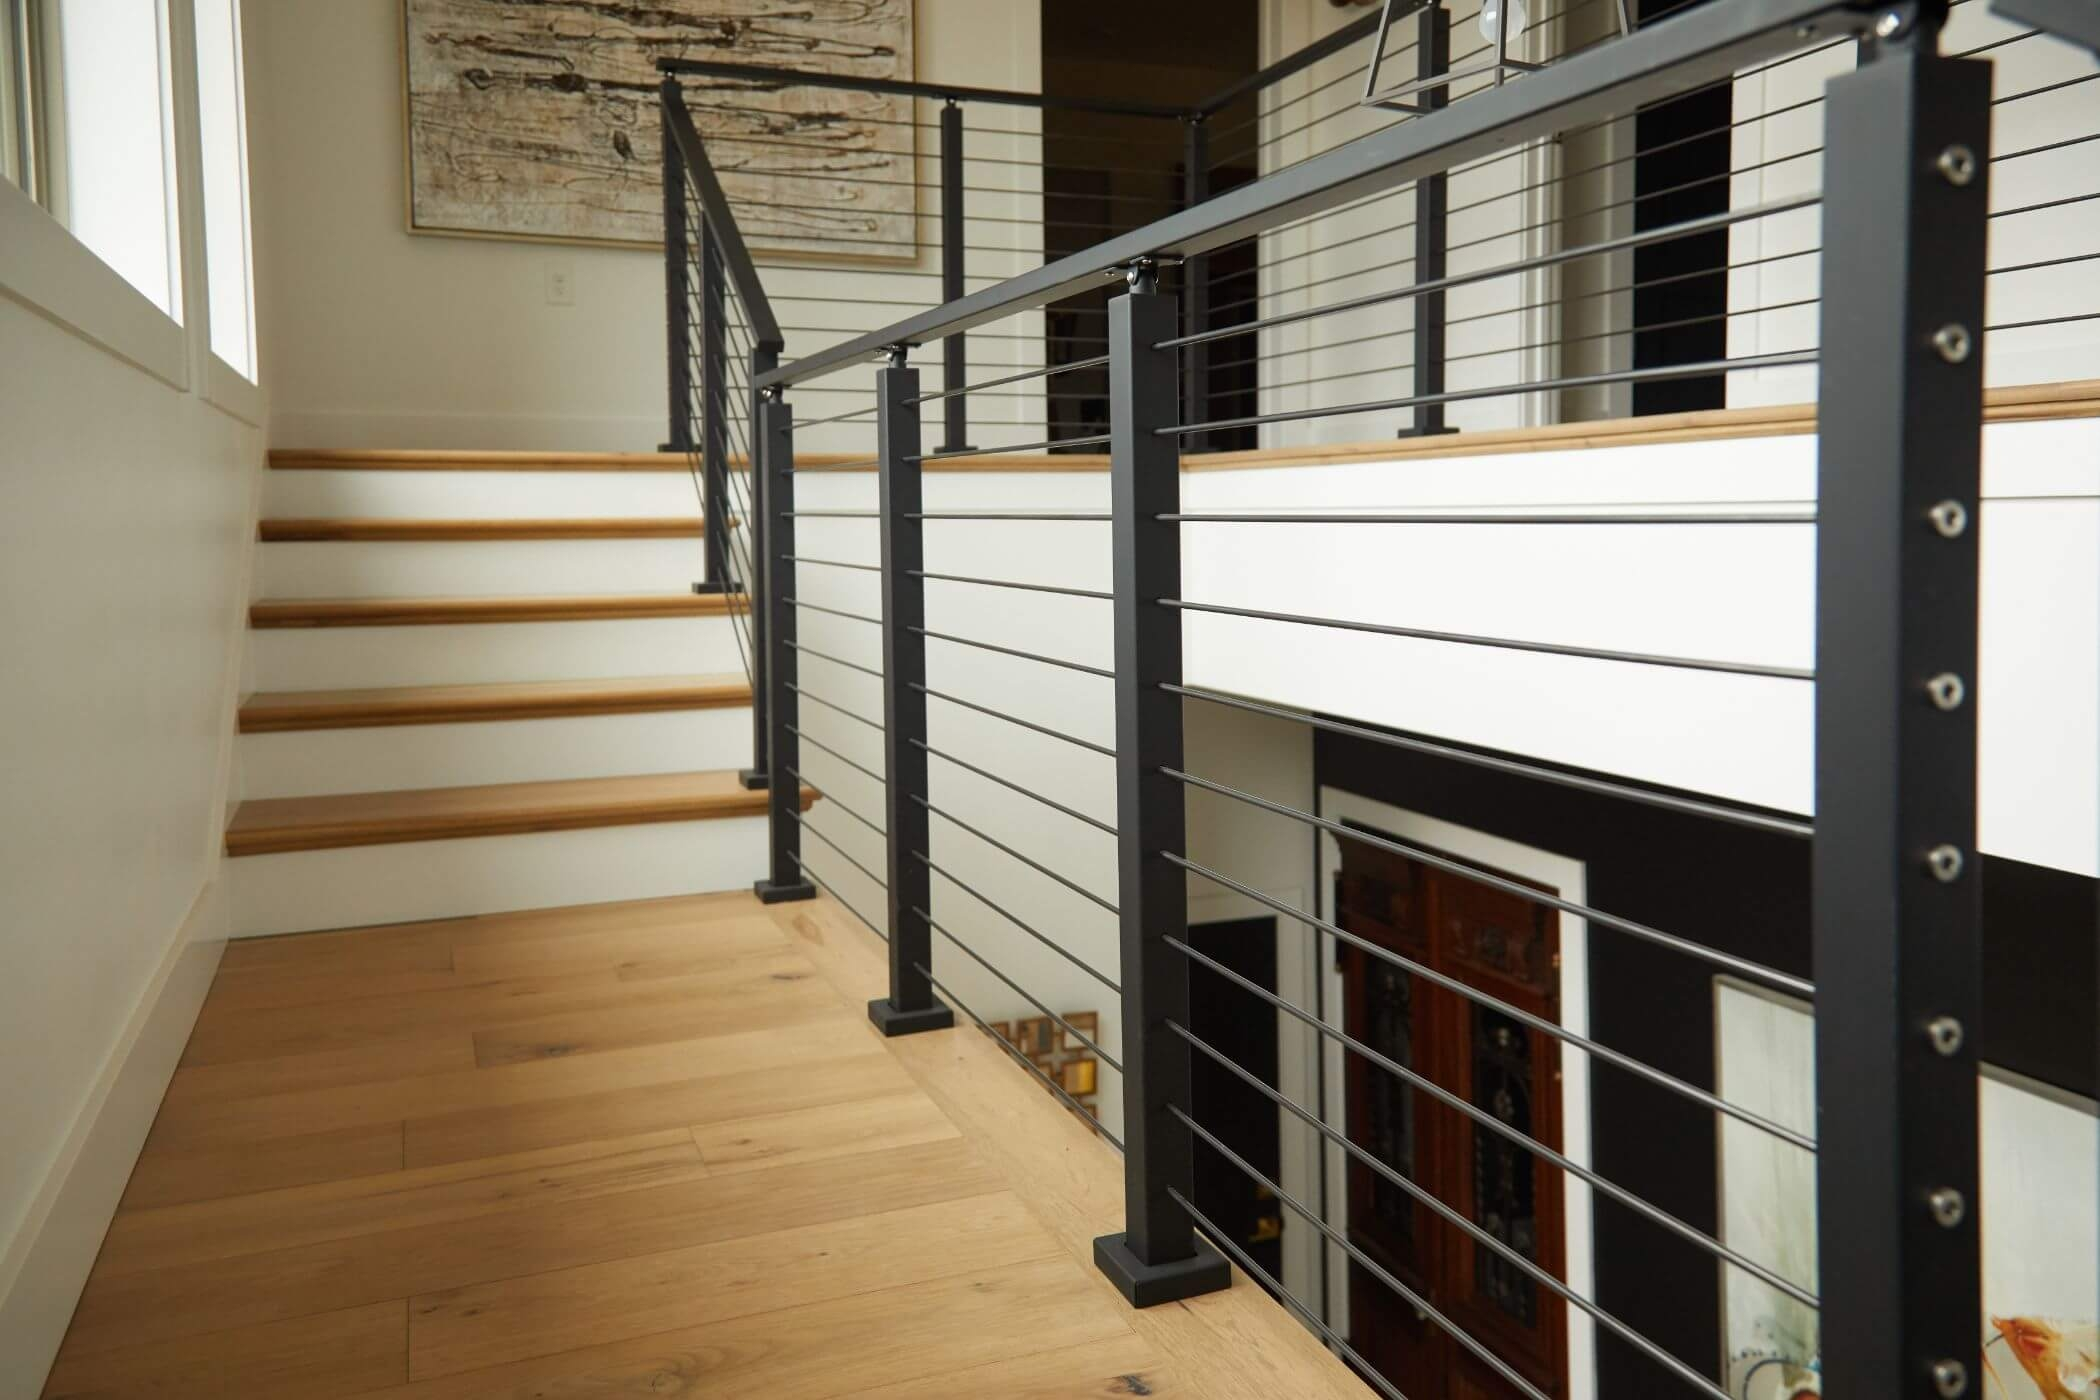 Stainless Steel Railing Rod Stair Railing Kits Posts Parts | Steel Railing For Stairs Price | Fancy | Iron Work | Ss Handrail | Cheap | Inside